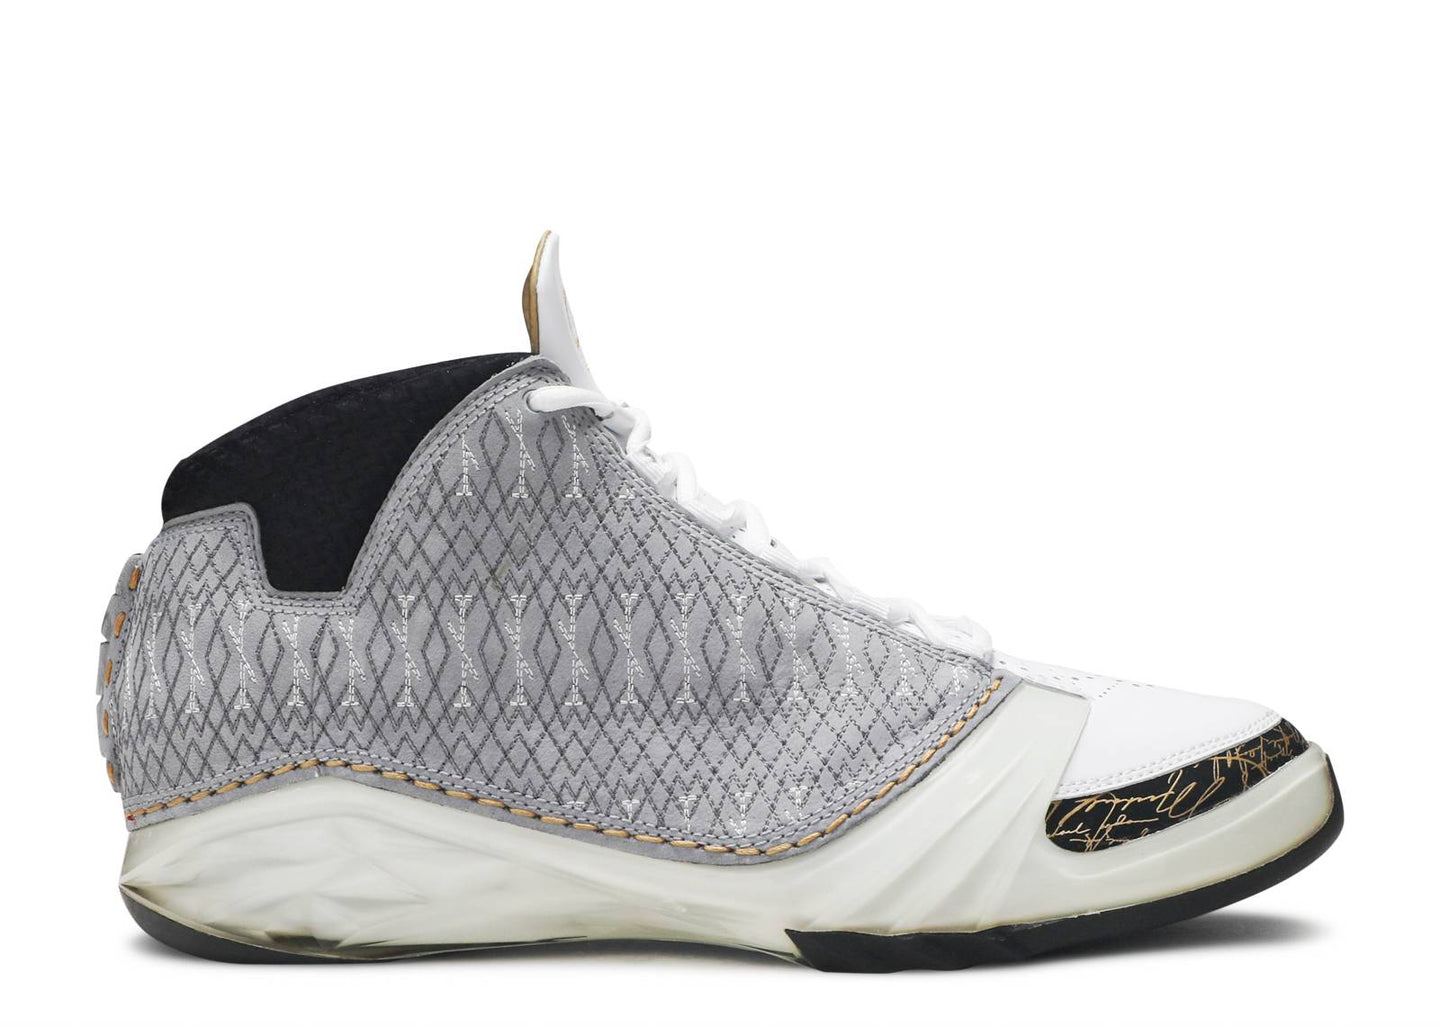 Air Jordan 23 White Stealth